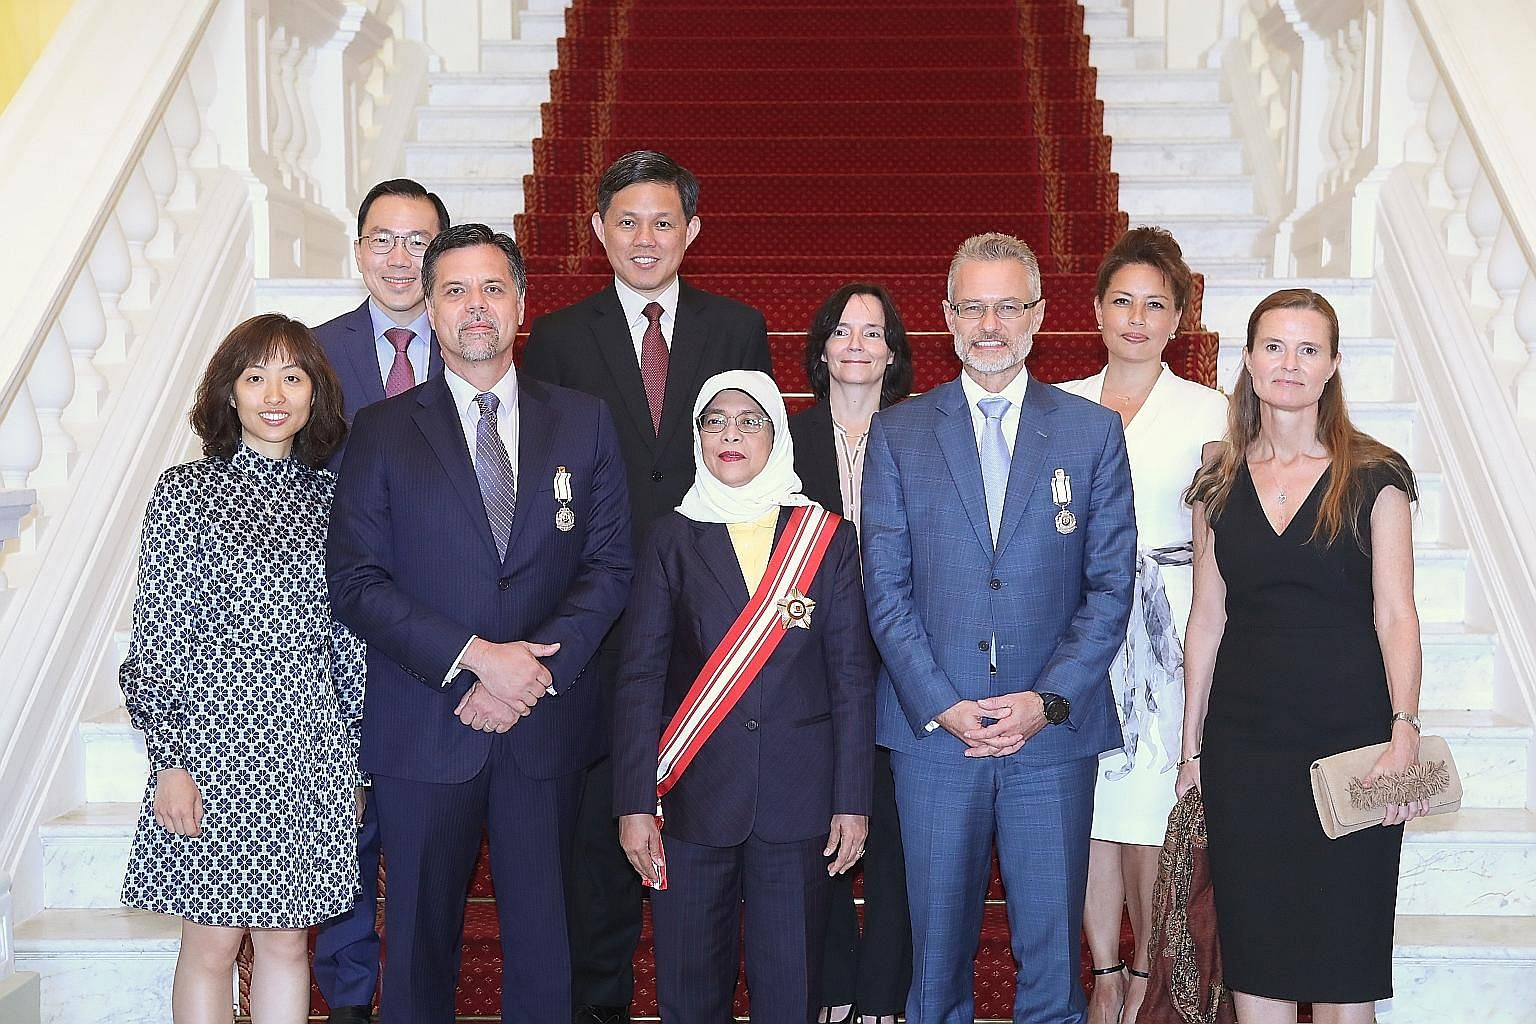 President Halimah Yacob at the investiture of The Public Service Medal last Thursday, flanked by (front row, second from left) Mr Wayne Russell Allan, ASML executive vice-president and Mr Oliver Tonby, senior partner and Asia chairman of McKinsey and